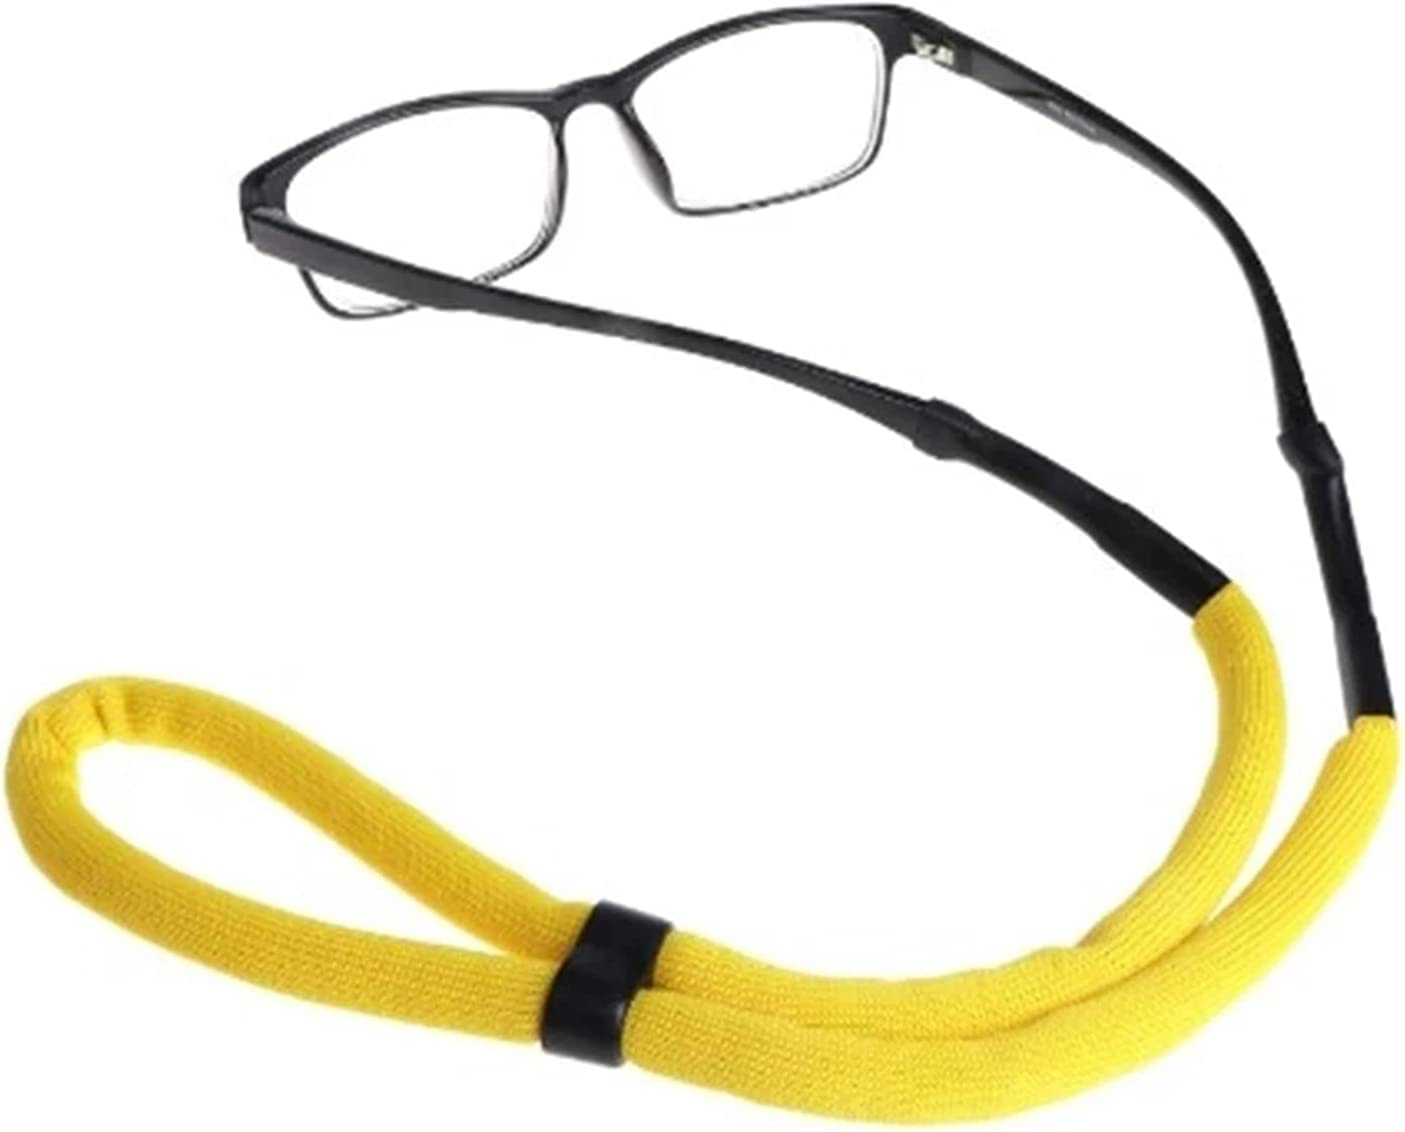 GWSD 6 Pc Floating Foam Chain Eyeglasses Straps Sunglasses Chain Sports Anti-Slip String Glasses Ropes Band Cord Holder (Color : Yellow)